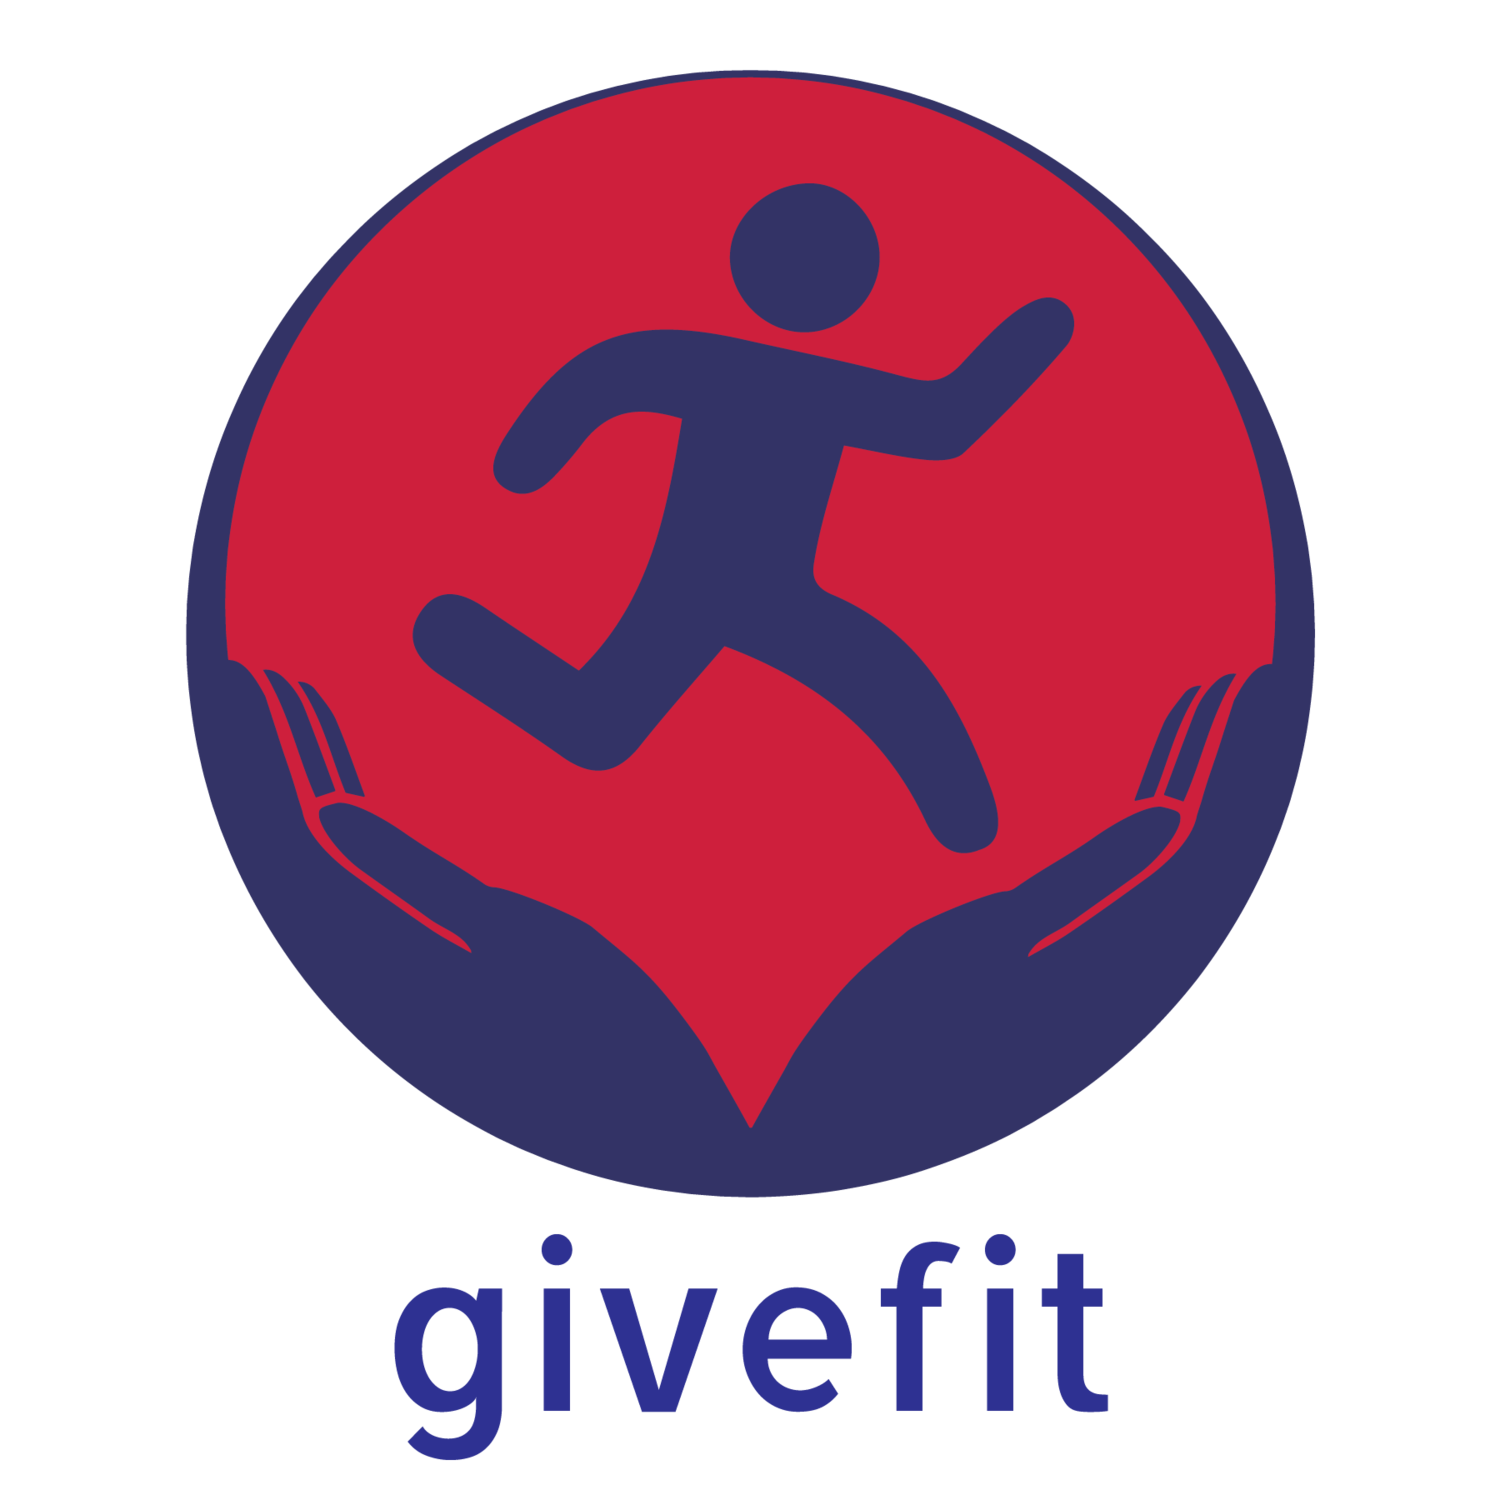 givefit